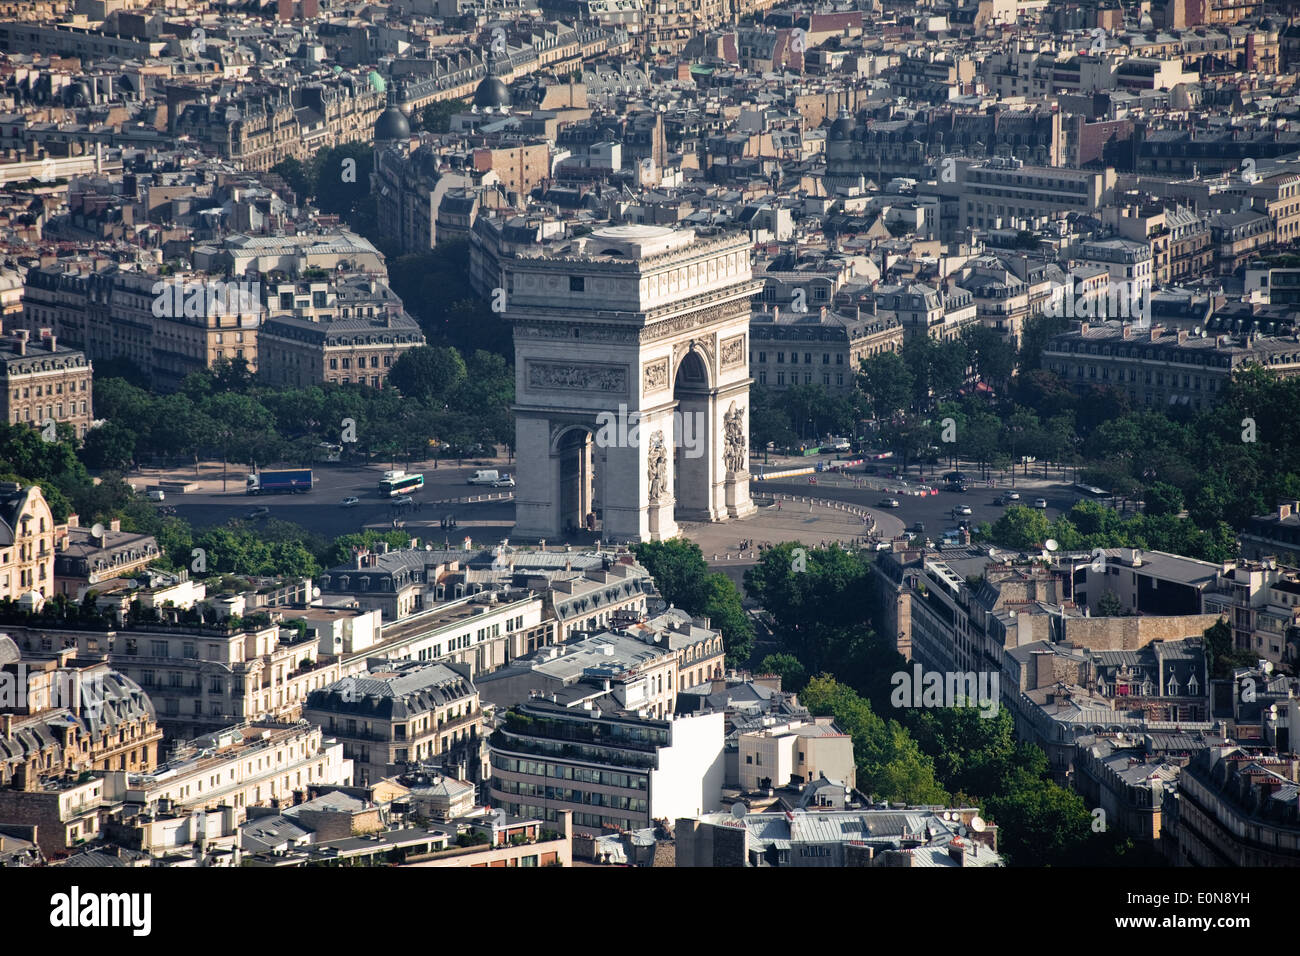 View from Eiffel Tower to Arc de Triomphe, Paris, France - Stock Image